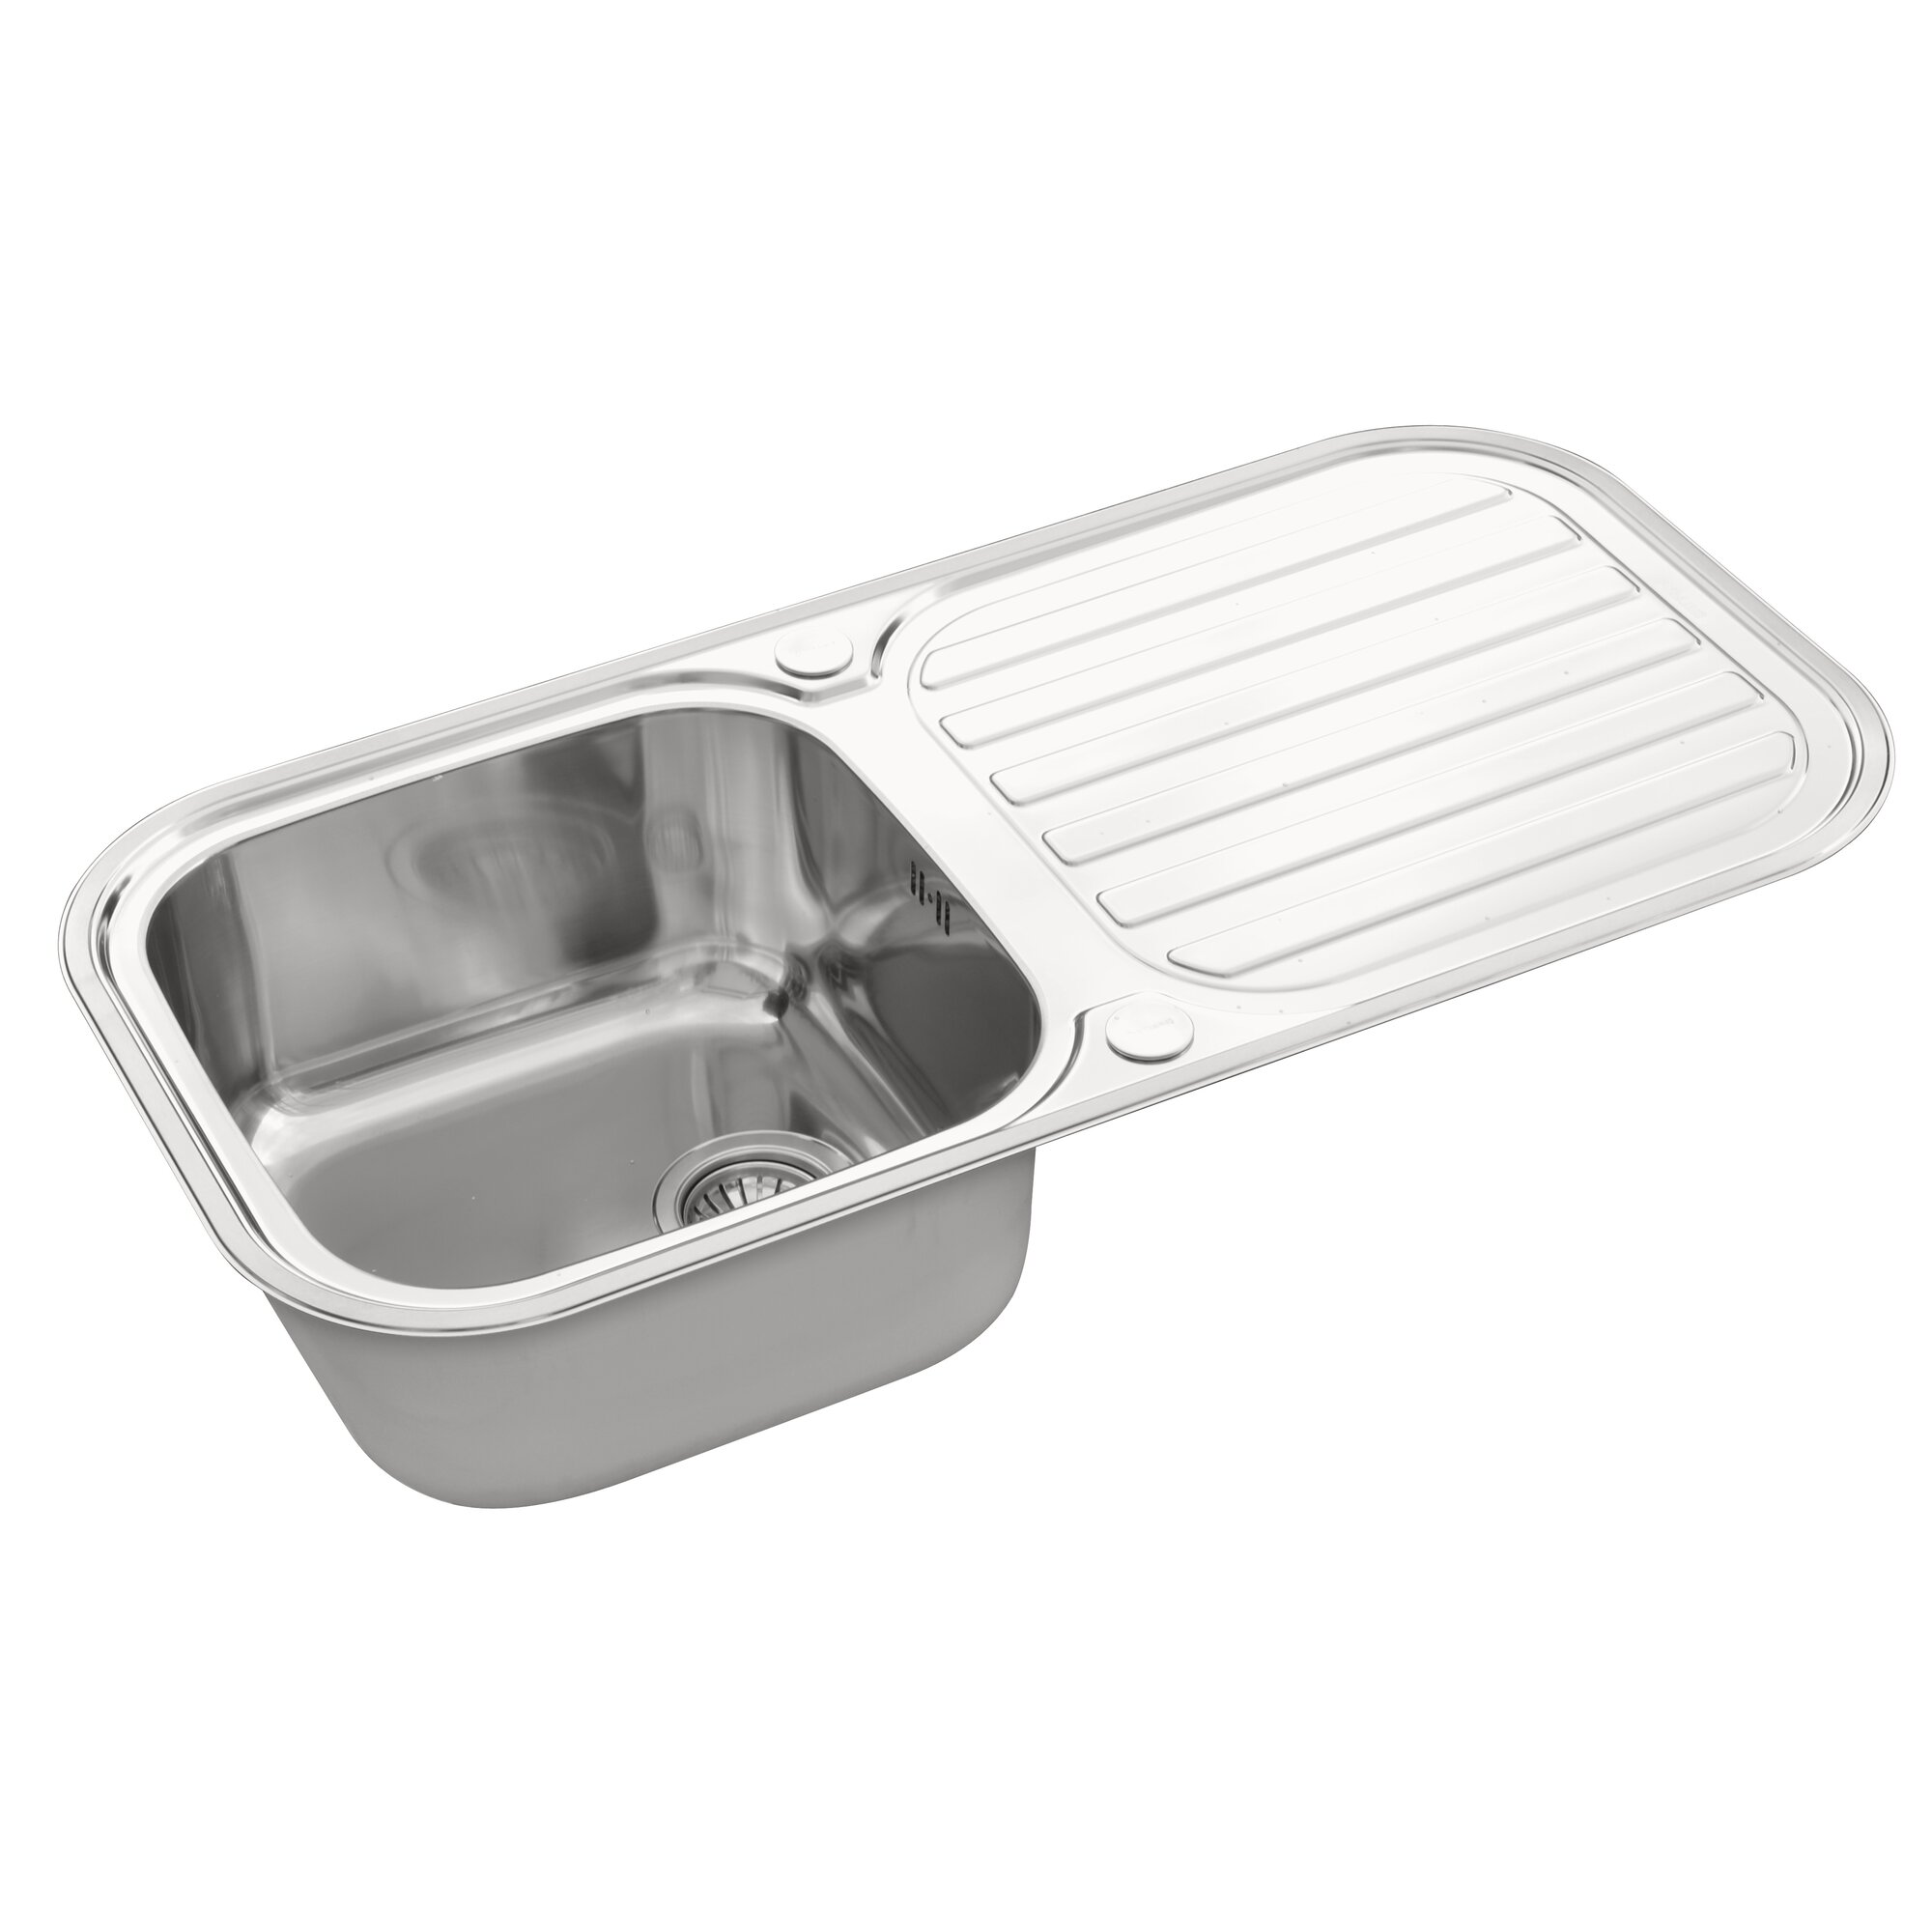 116 cm stainless steel double bowl single drainer inset sink right - Galaxy 96cm X 48cm Kitchen Sink